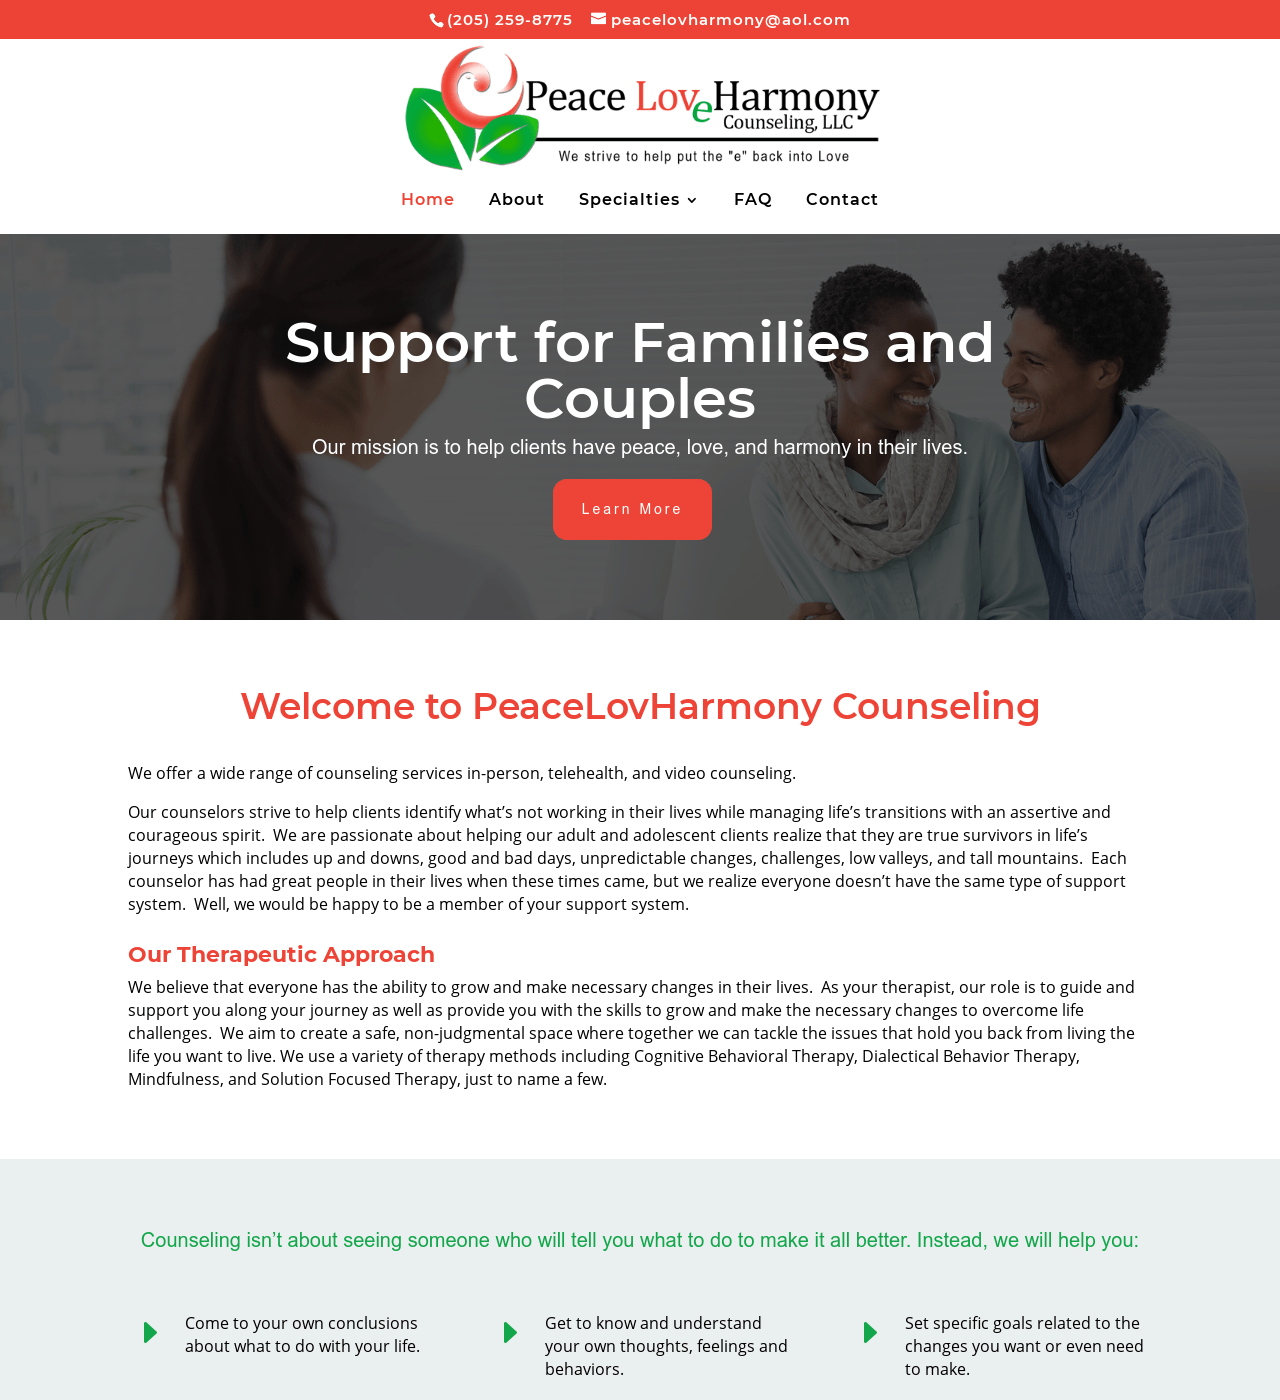 Birmingham-Web-Design-Agency-C-Kinion-Design- PeaceLovHarmony Counseling